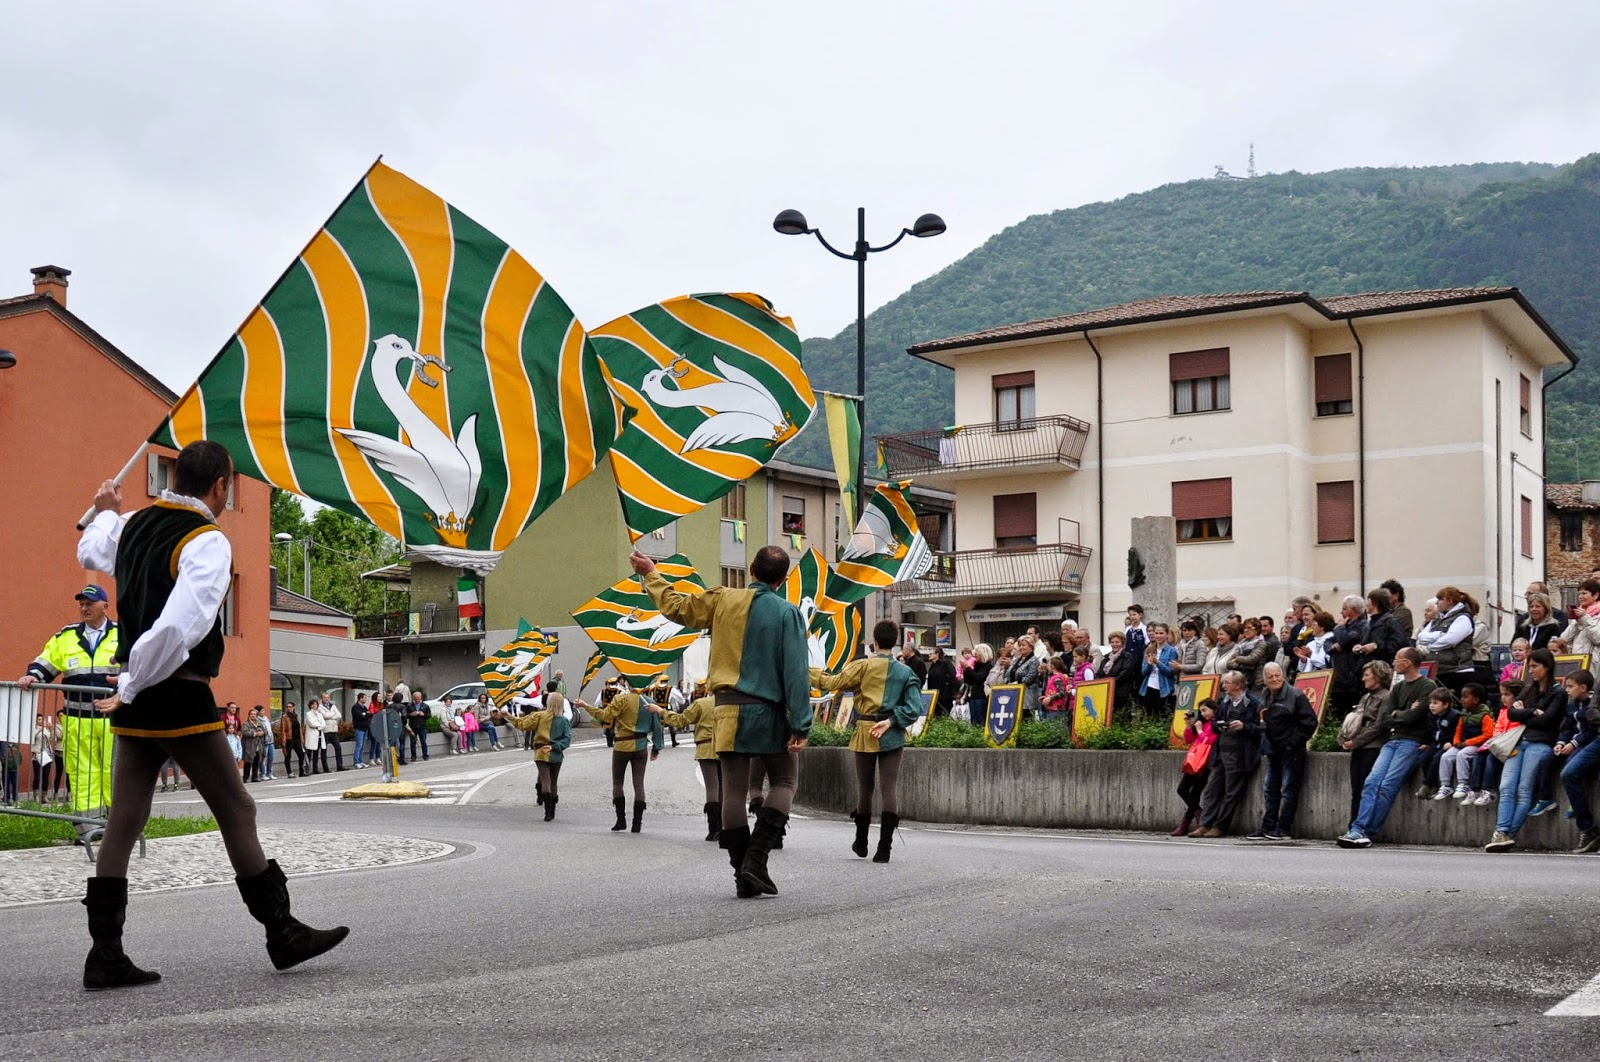 Flag throwers at the Parade, Donkey Race, Romano d'Ezzelino, Veneto, Italy-3